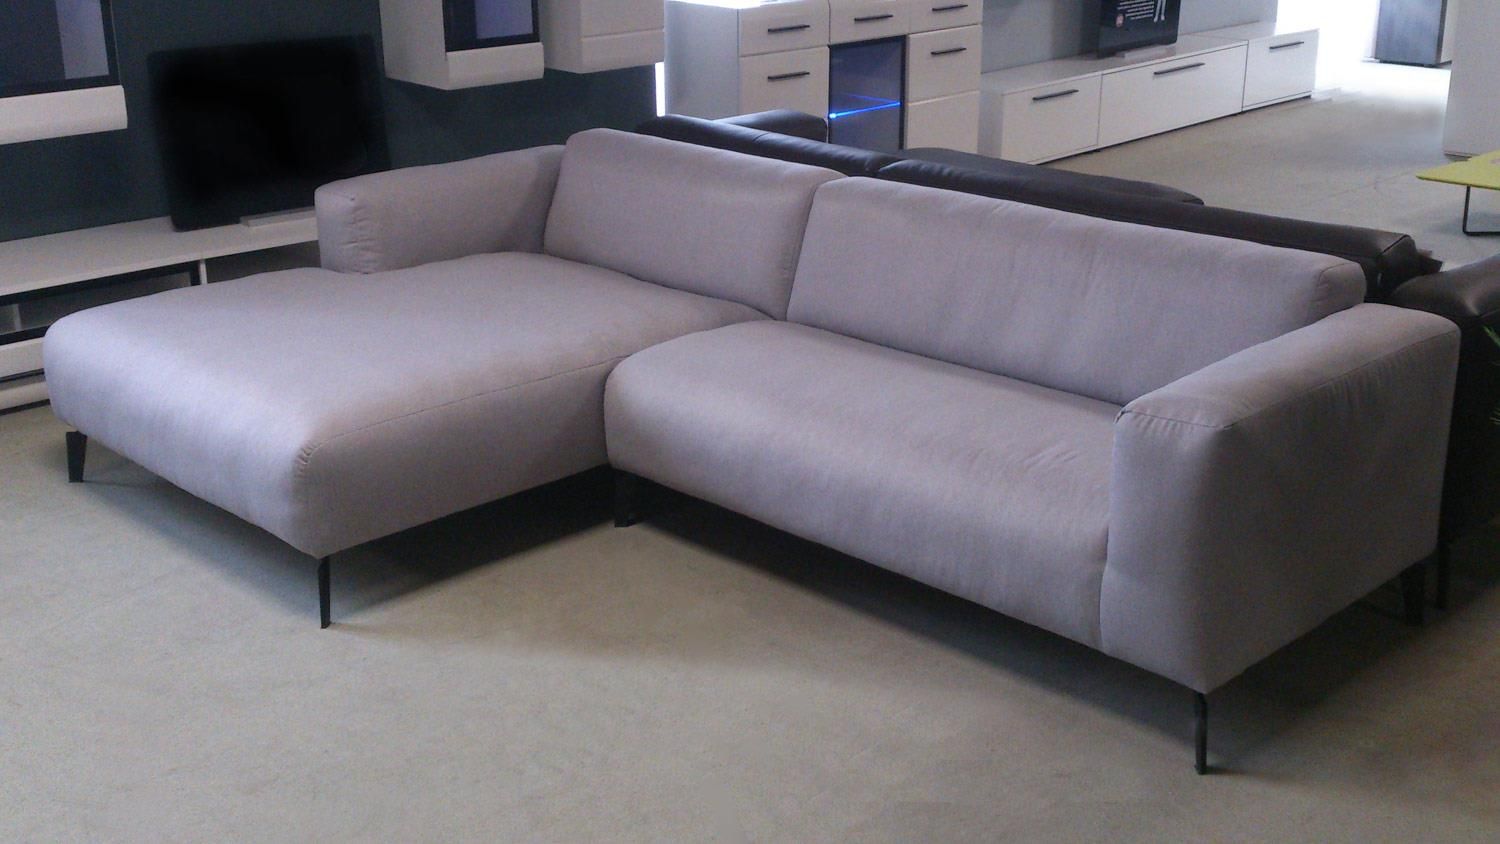 Freistil Sofa Rolf Benz Freistil 186 Ecksofa Links Bezug Hellgrau Stoff